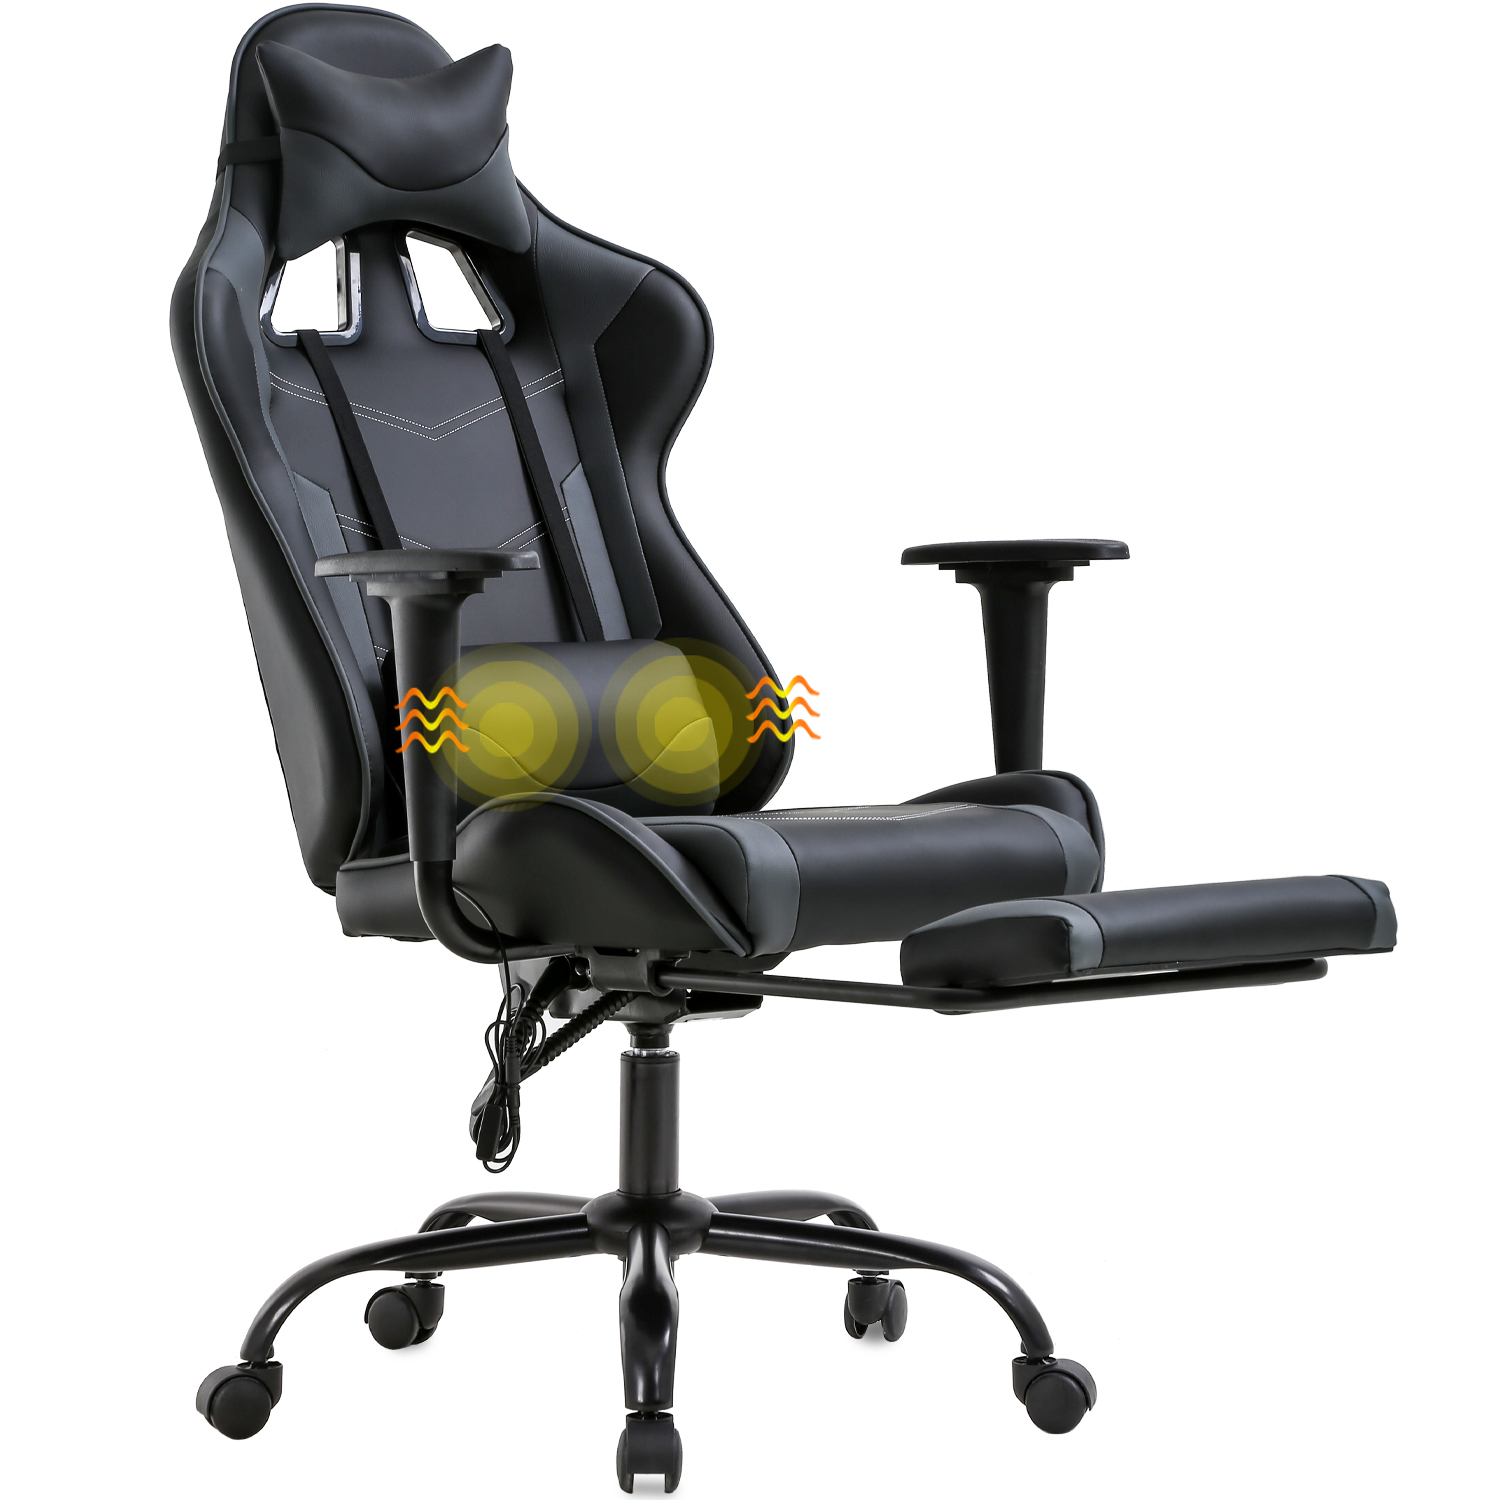 PC Gaming Chair Ergonomic Office Chair Racing Computer Chair Executive High Back PU Leather Desk Chair with Lumbar Support Armrest Headrest Rolling Swivel Chair for Women Adults Camo